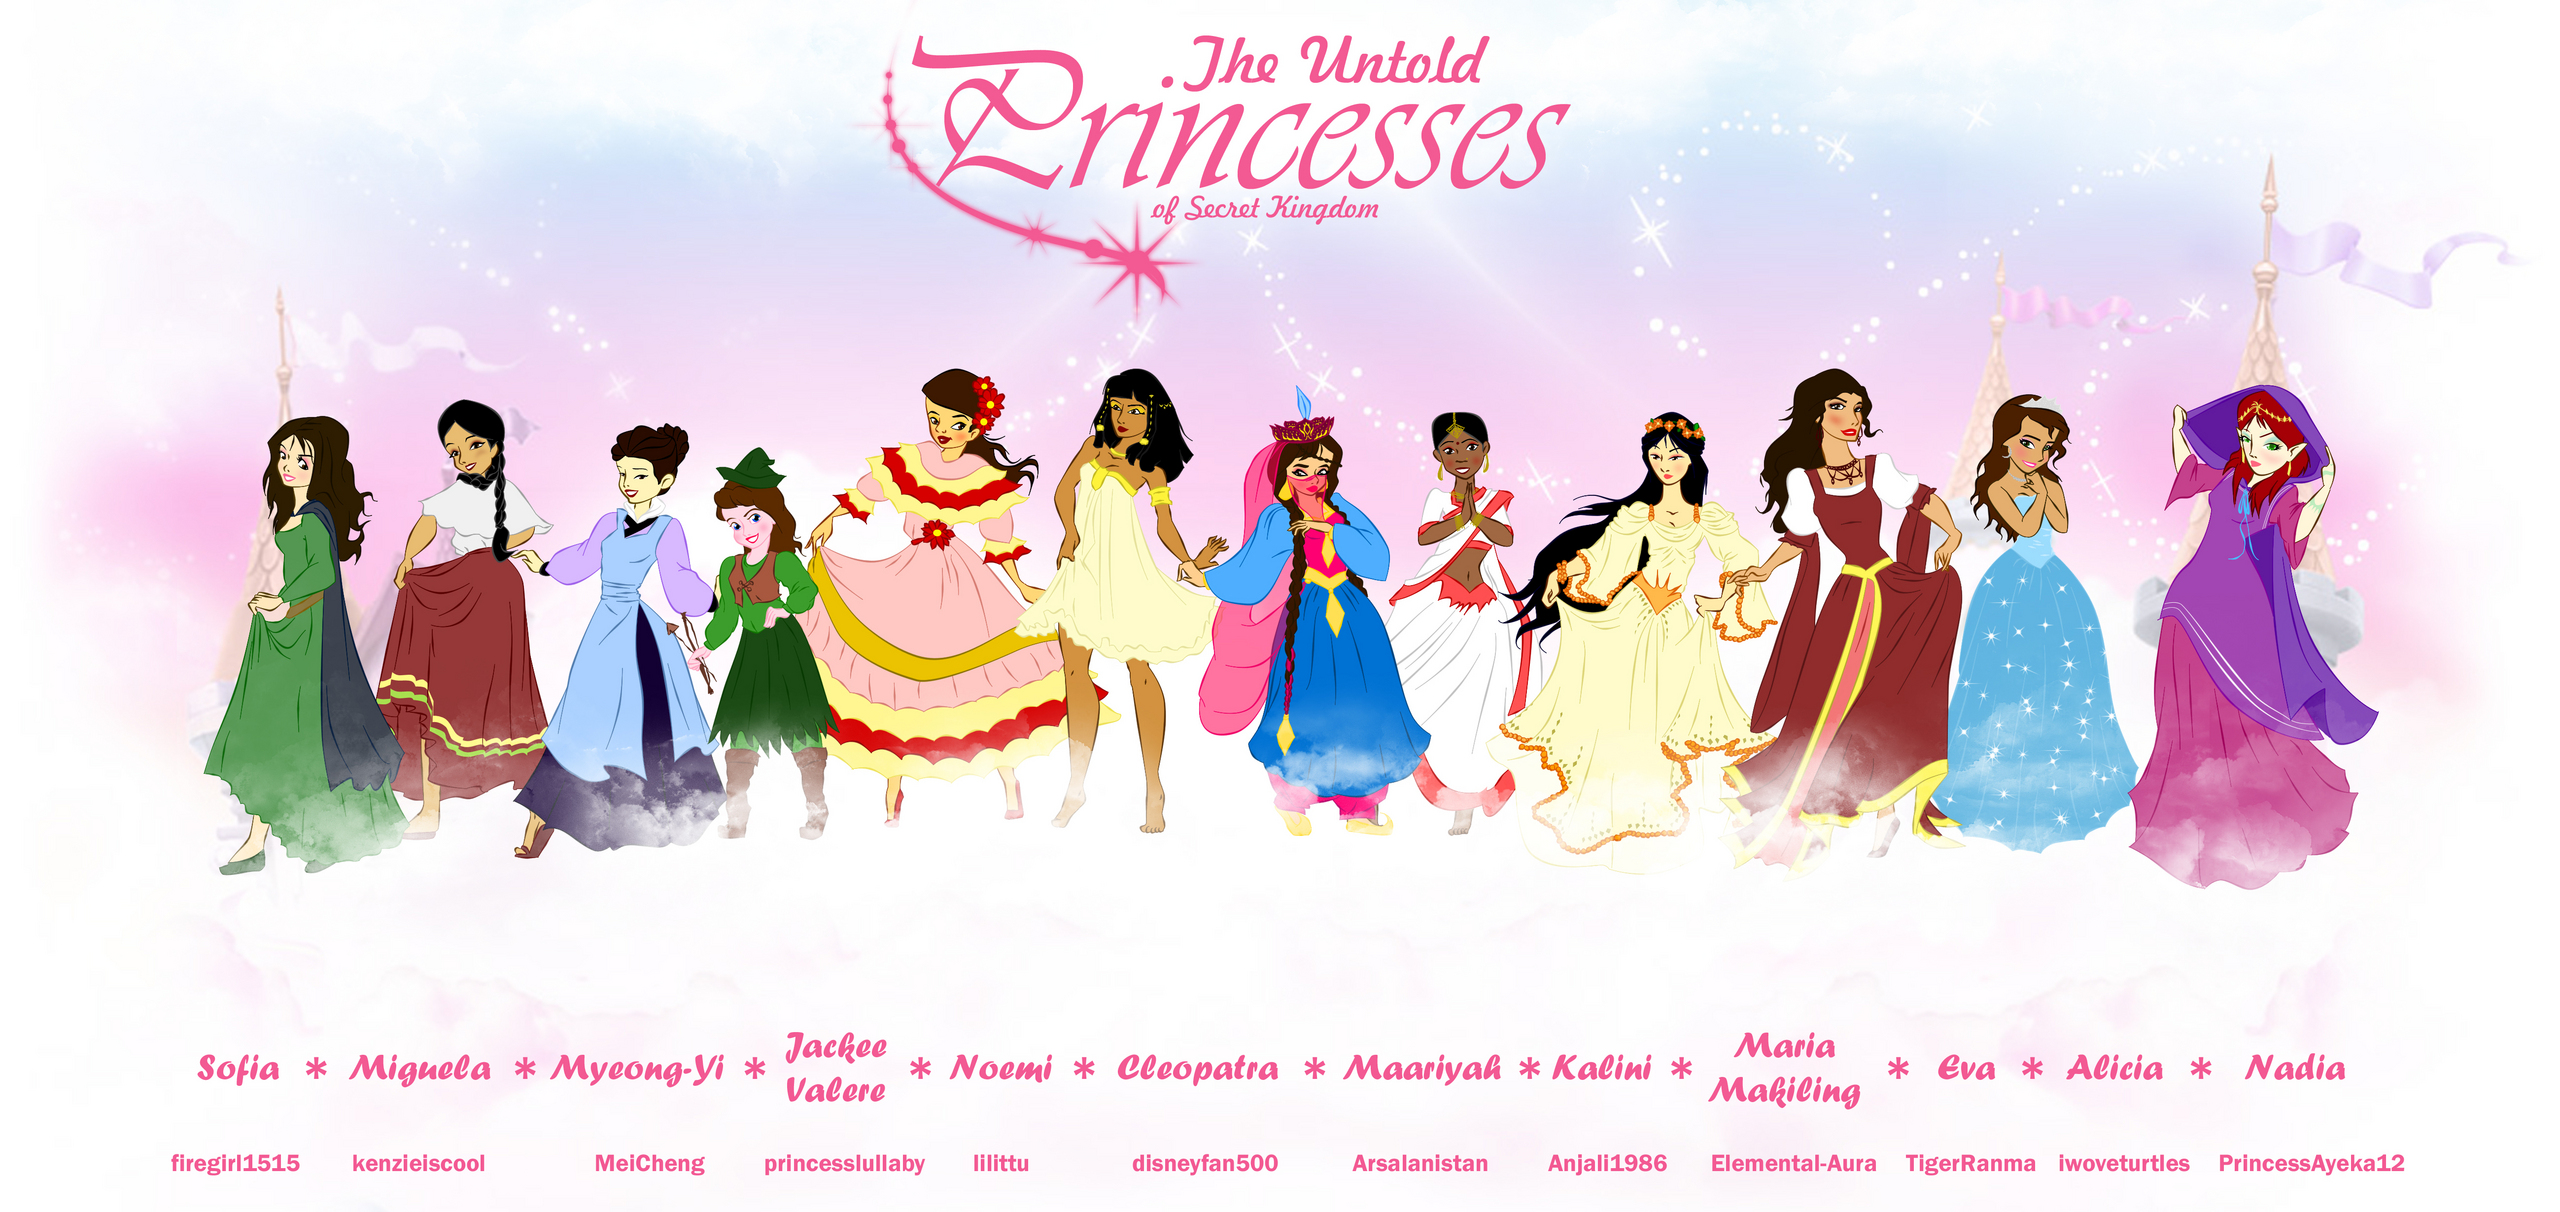 The Untold Princesses of Secret Kingdom